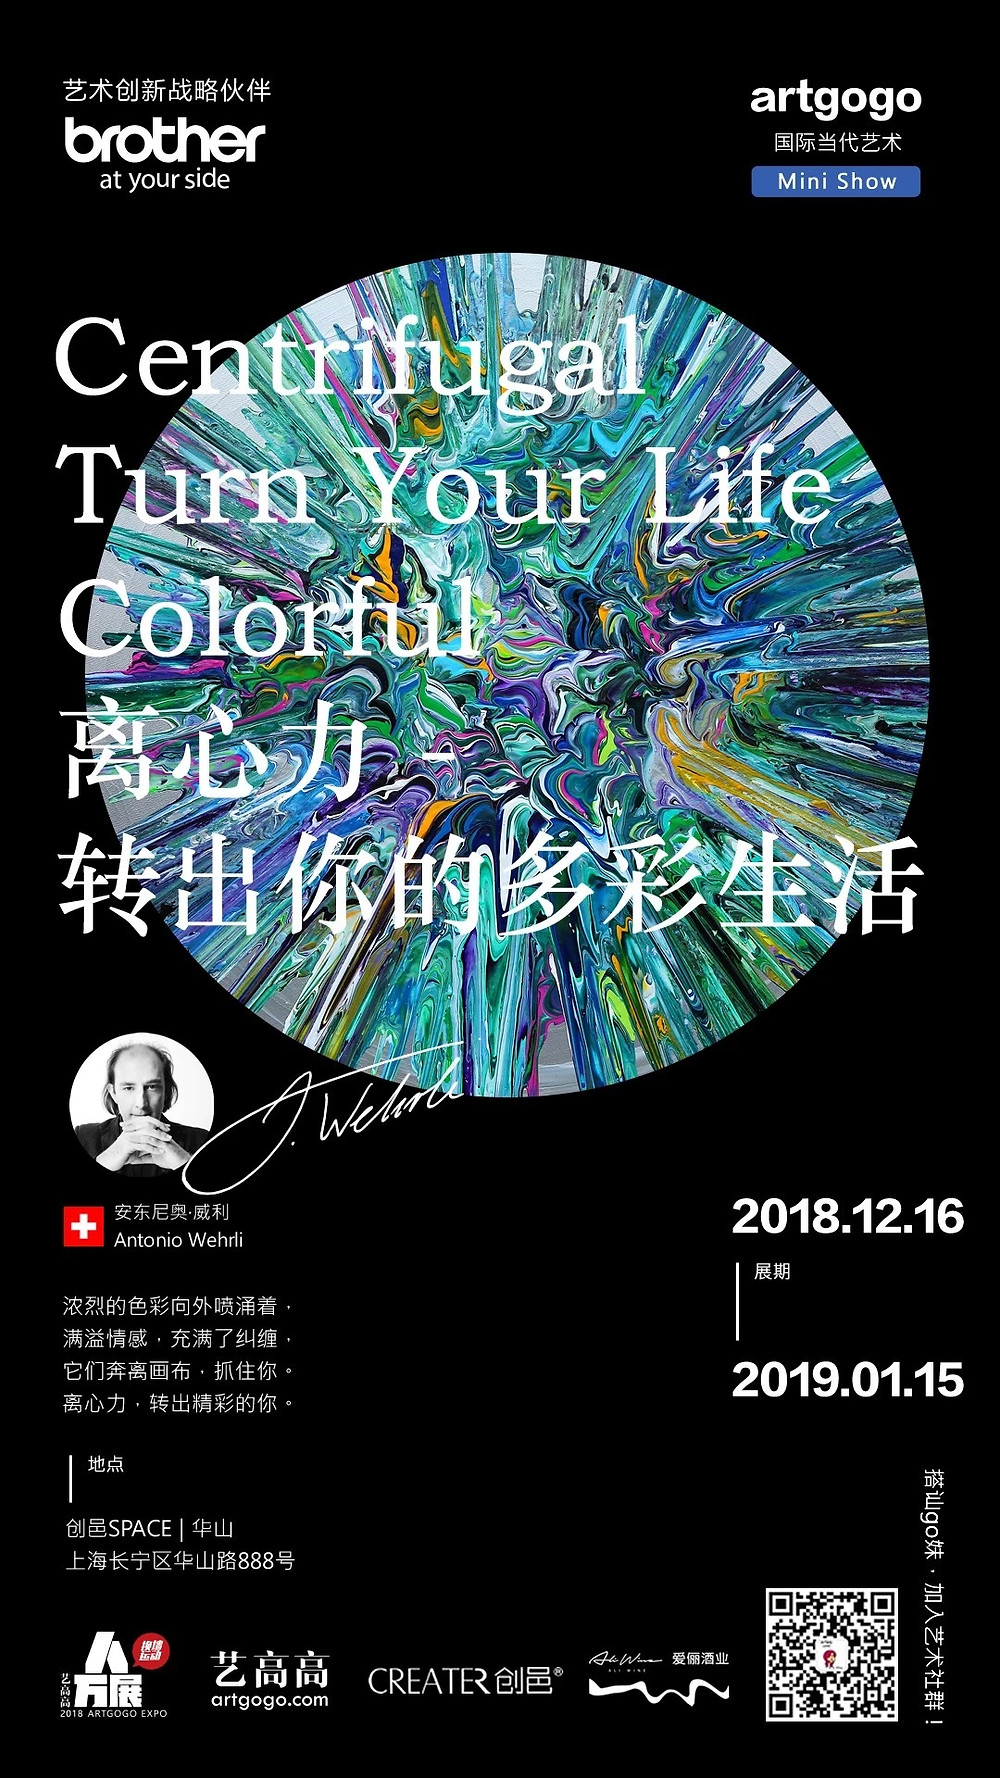 Centrifugal - Turn your life colorful - Solo Exhibition by artist Antonio Wehrli